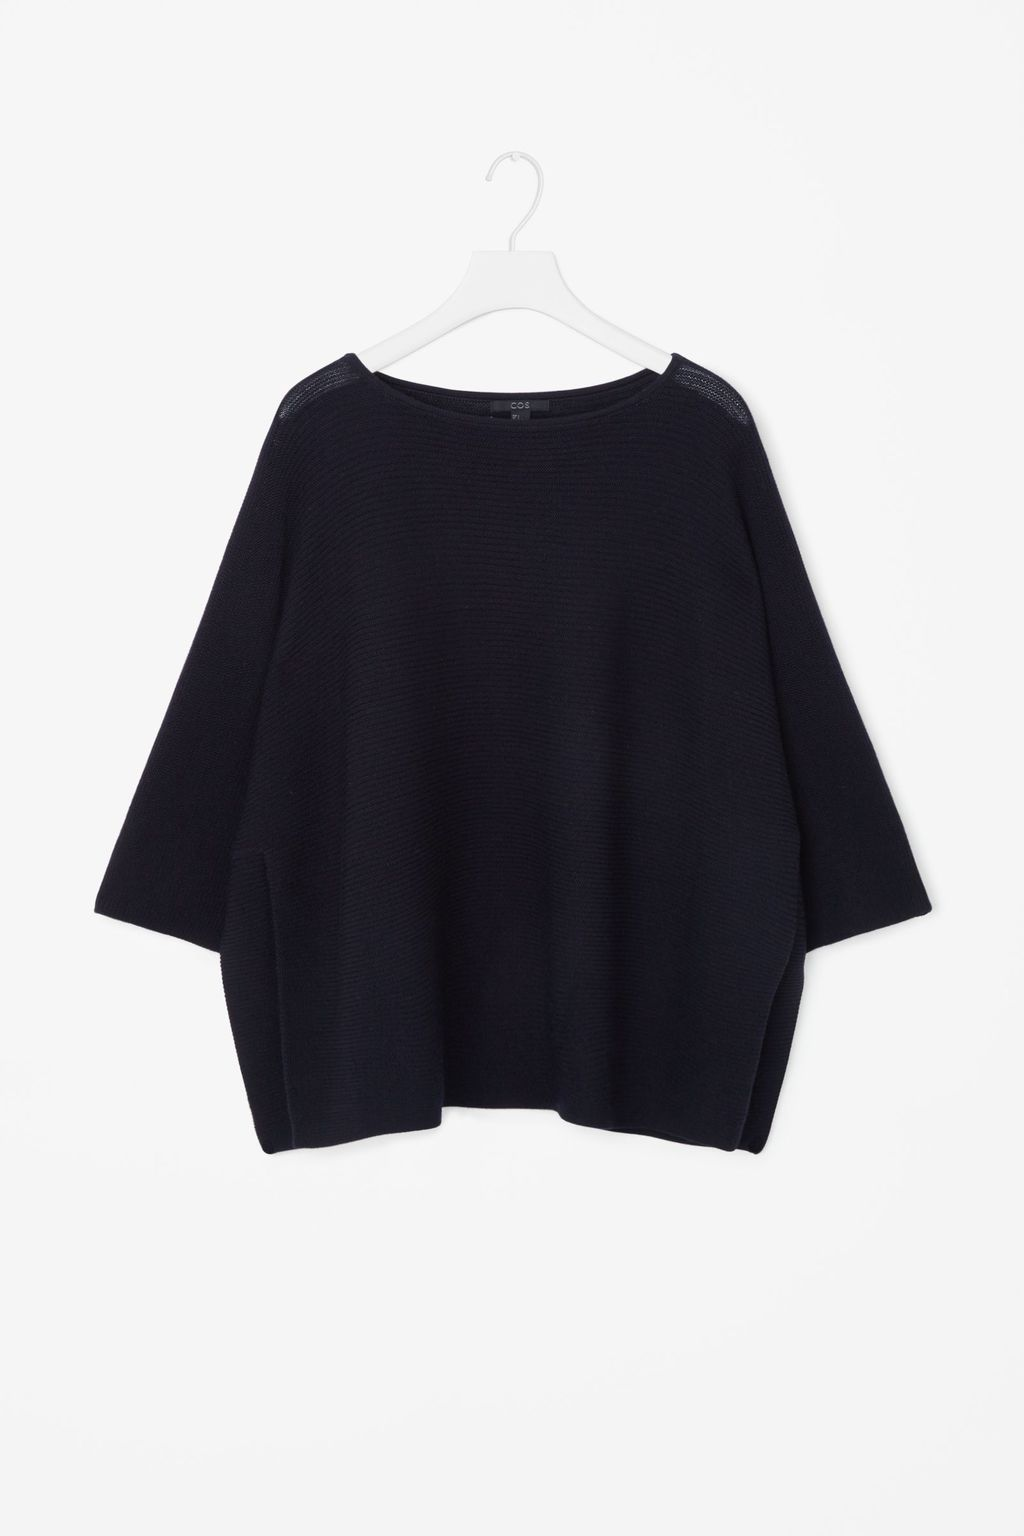 Cropped Oversize Knit Jumper - neckline: round neck; pattern: plain; style: poncho; predominant colour: black; occasions: casual, creative work; length: standard; fibres: wool - 100%; fit: loose; sleeve length: 3/4 length; texture group: knits/crochet; pattern type: knitted - fine stitch; sleeve style: cape/poncho sleeve; season: s/s 2016; wardrobe: highlight